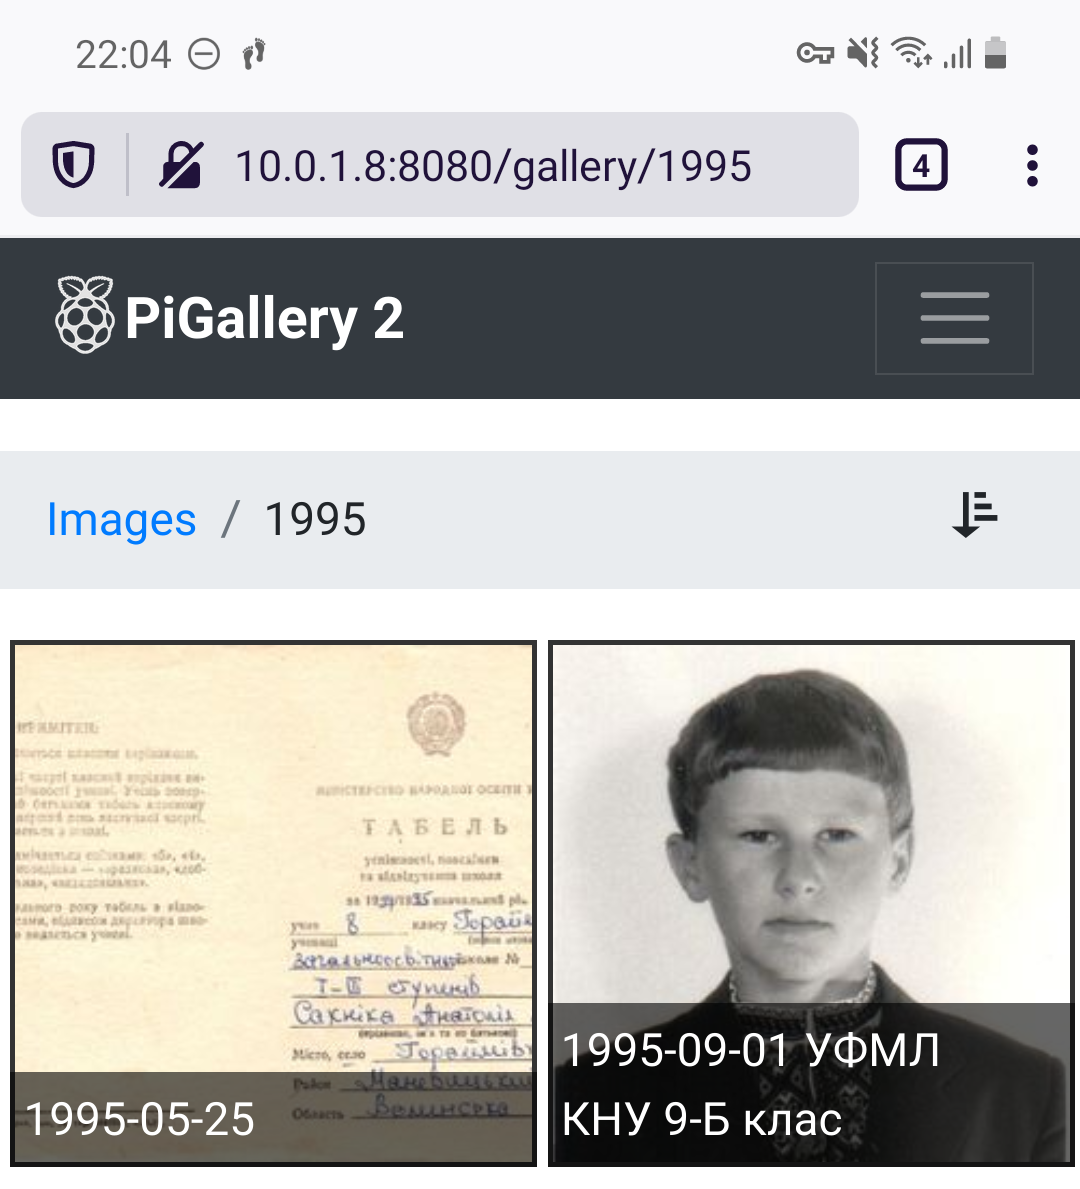 PiGallery2 on the mobile screen